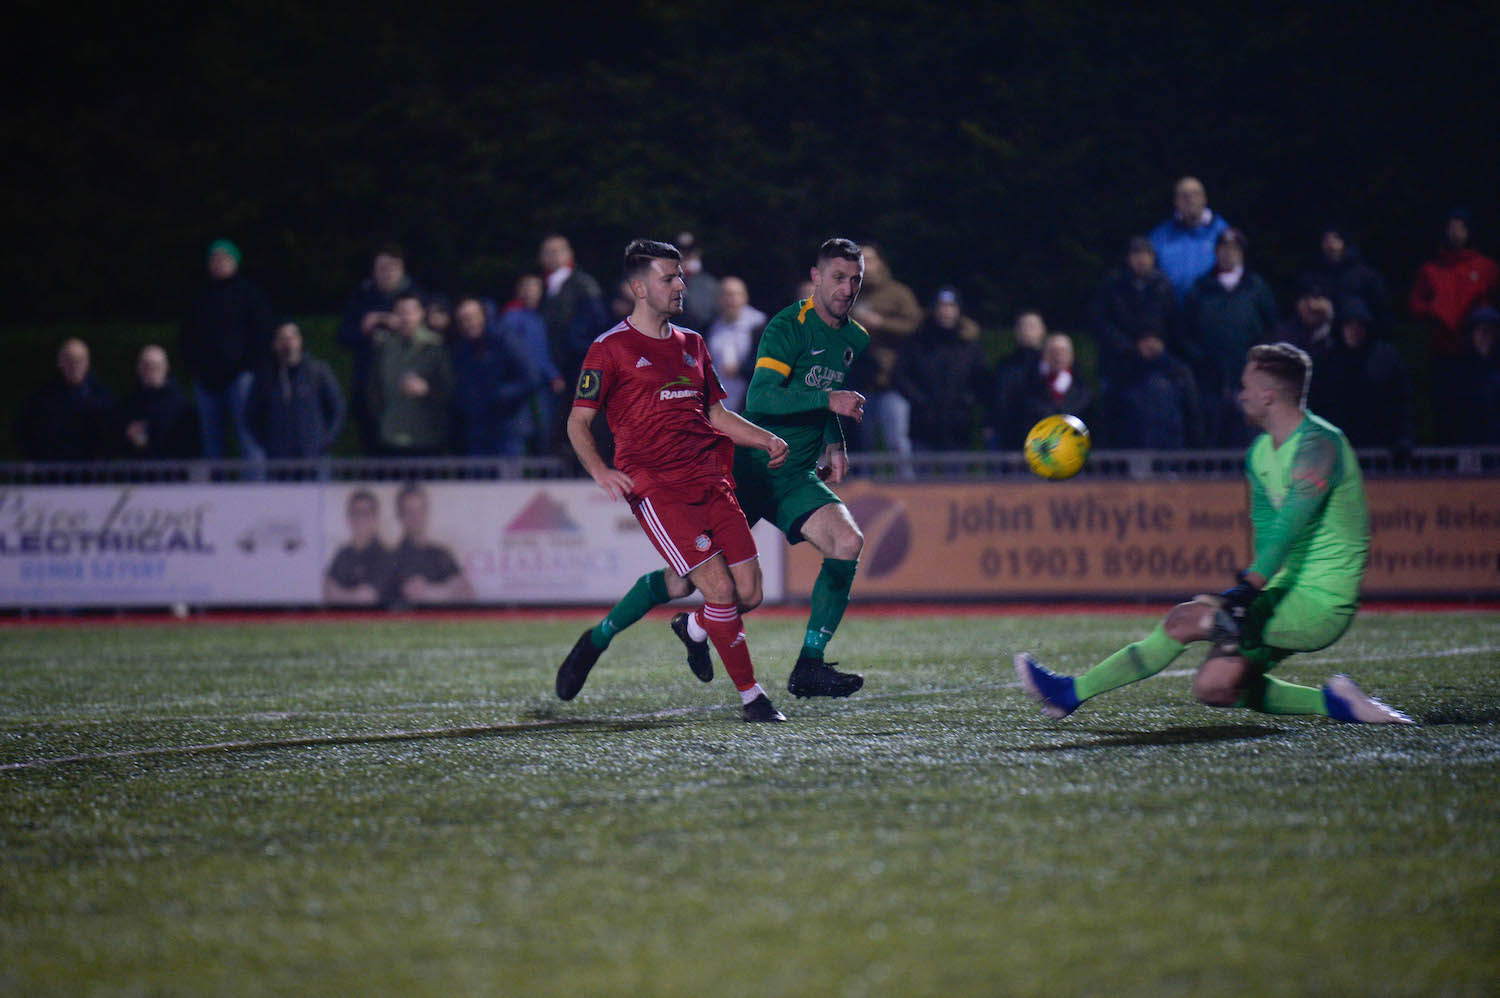 Read the full article - Red meets Yellow in County Cup Clash